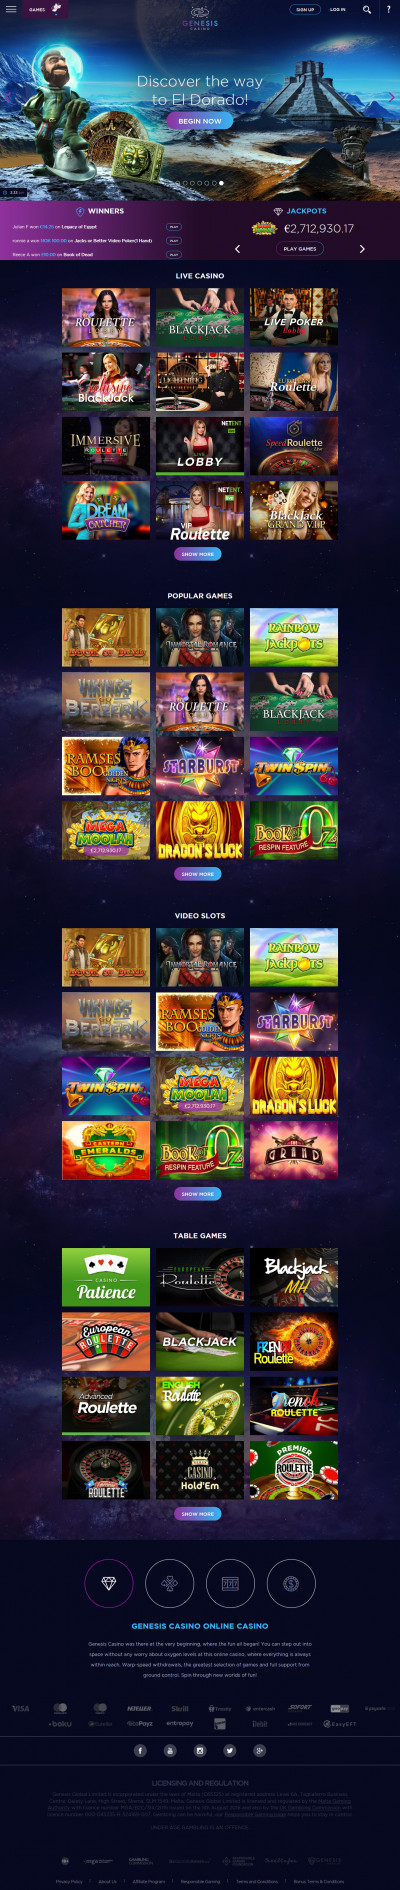 Genesis Casino Screenshot